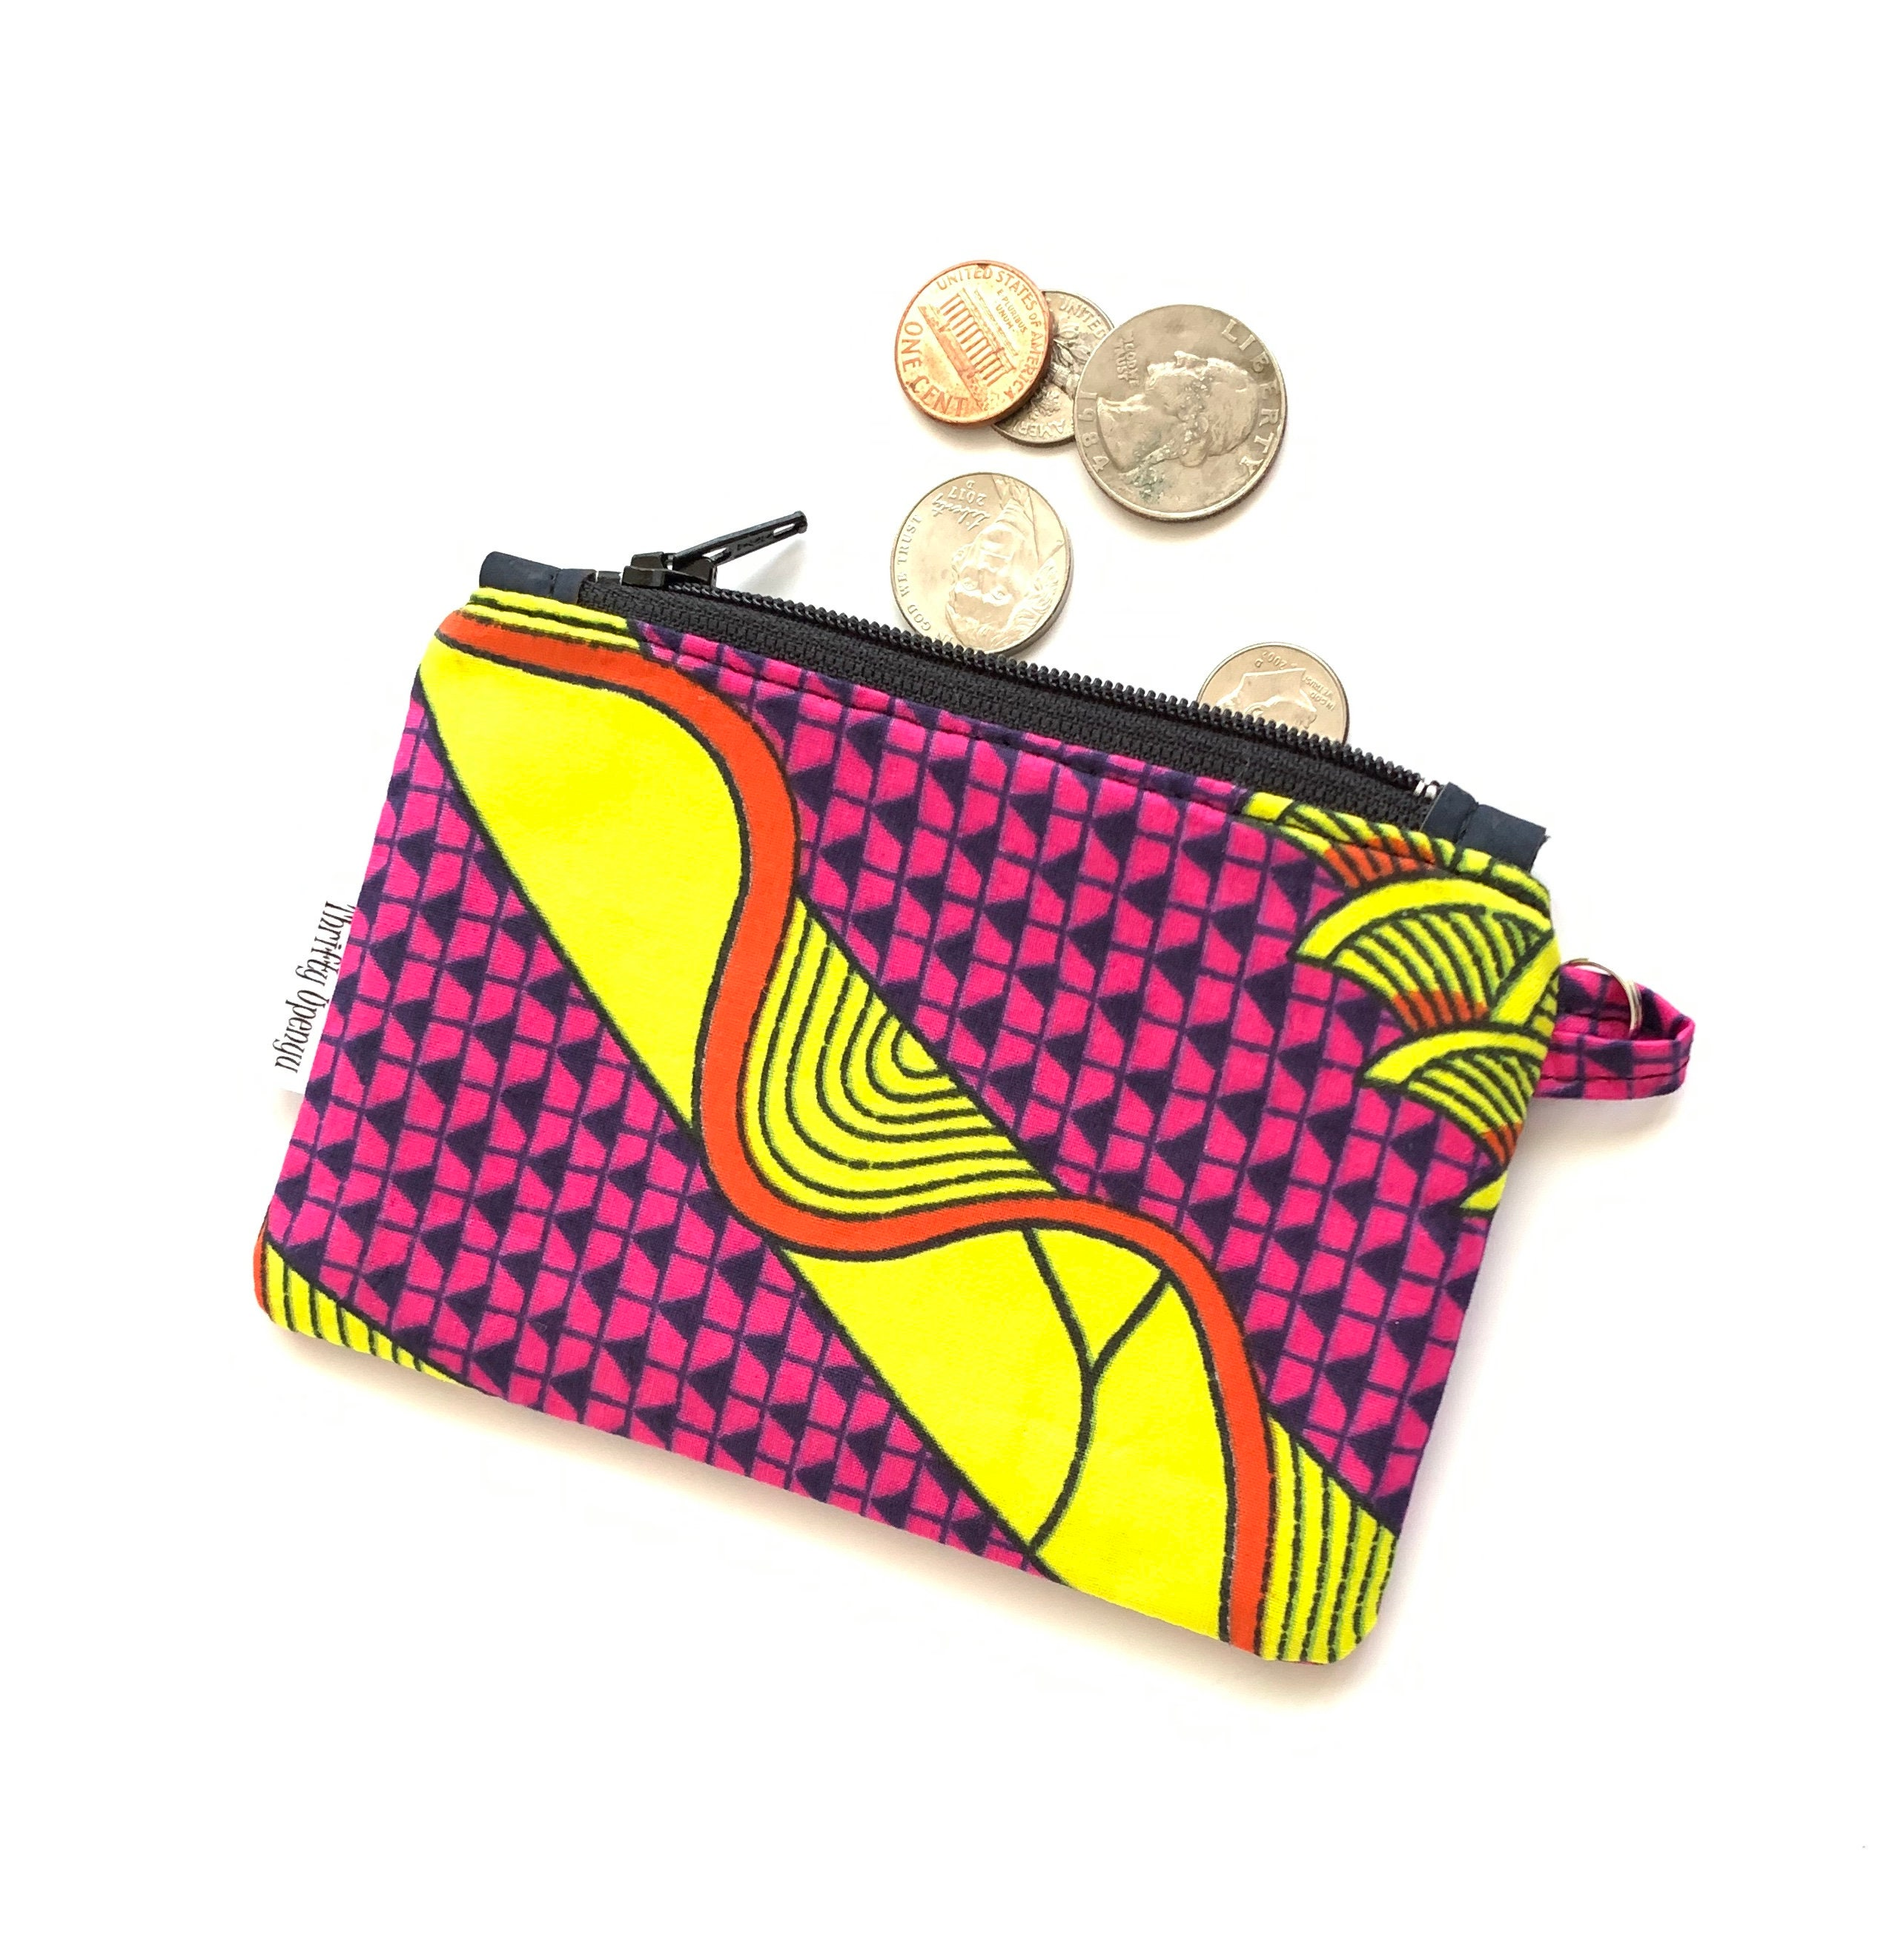 Kilim patterned boho style change pouch Zipper fabric mini coin purse with key ring and lobster claw clasp